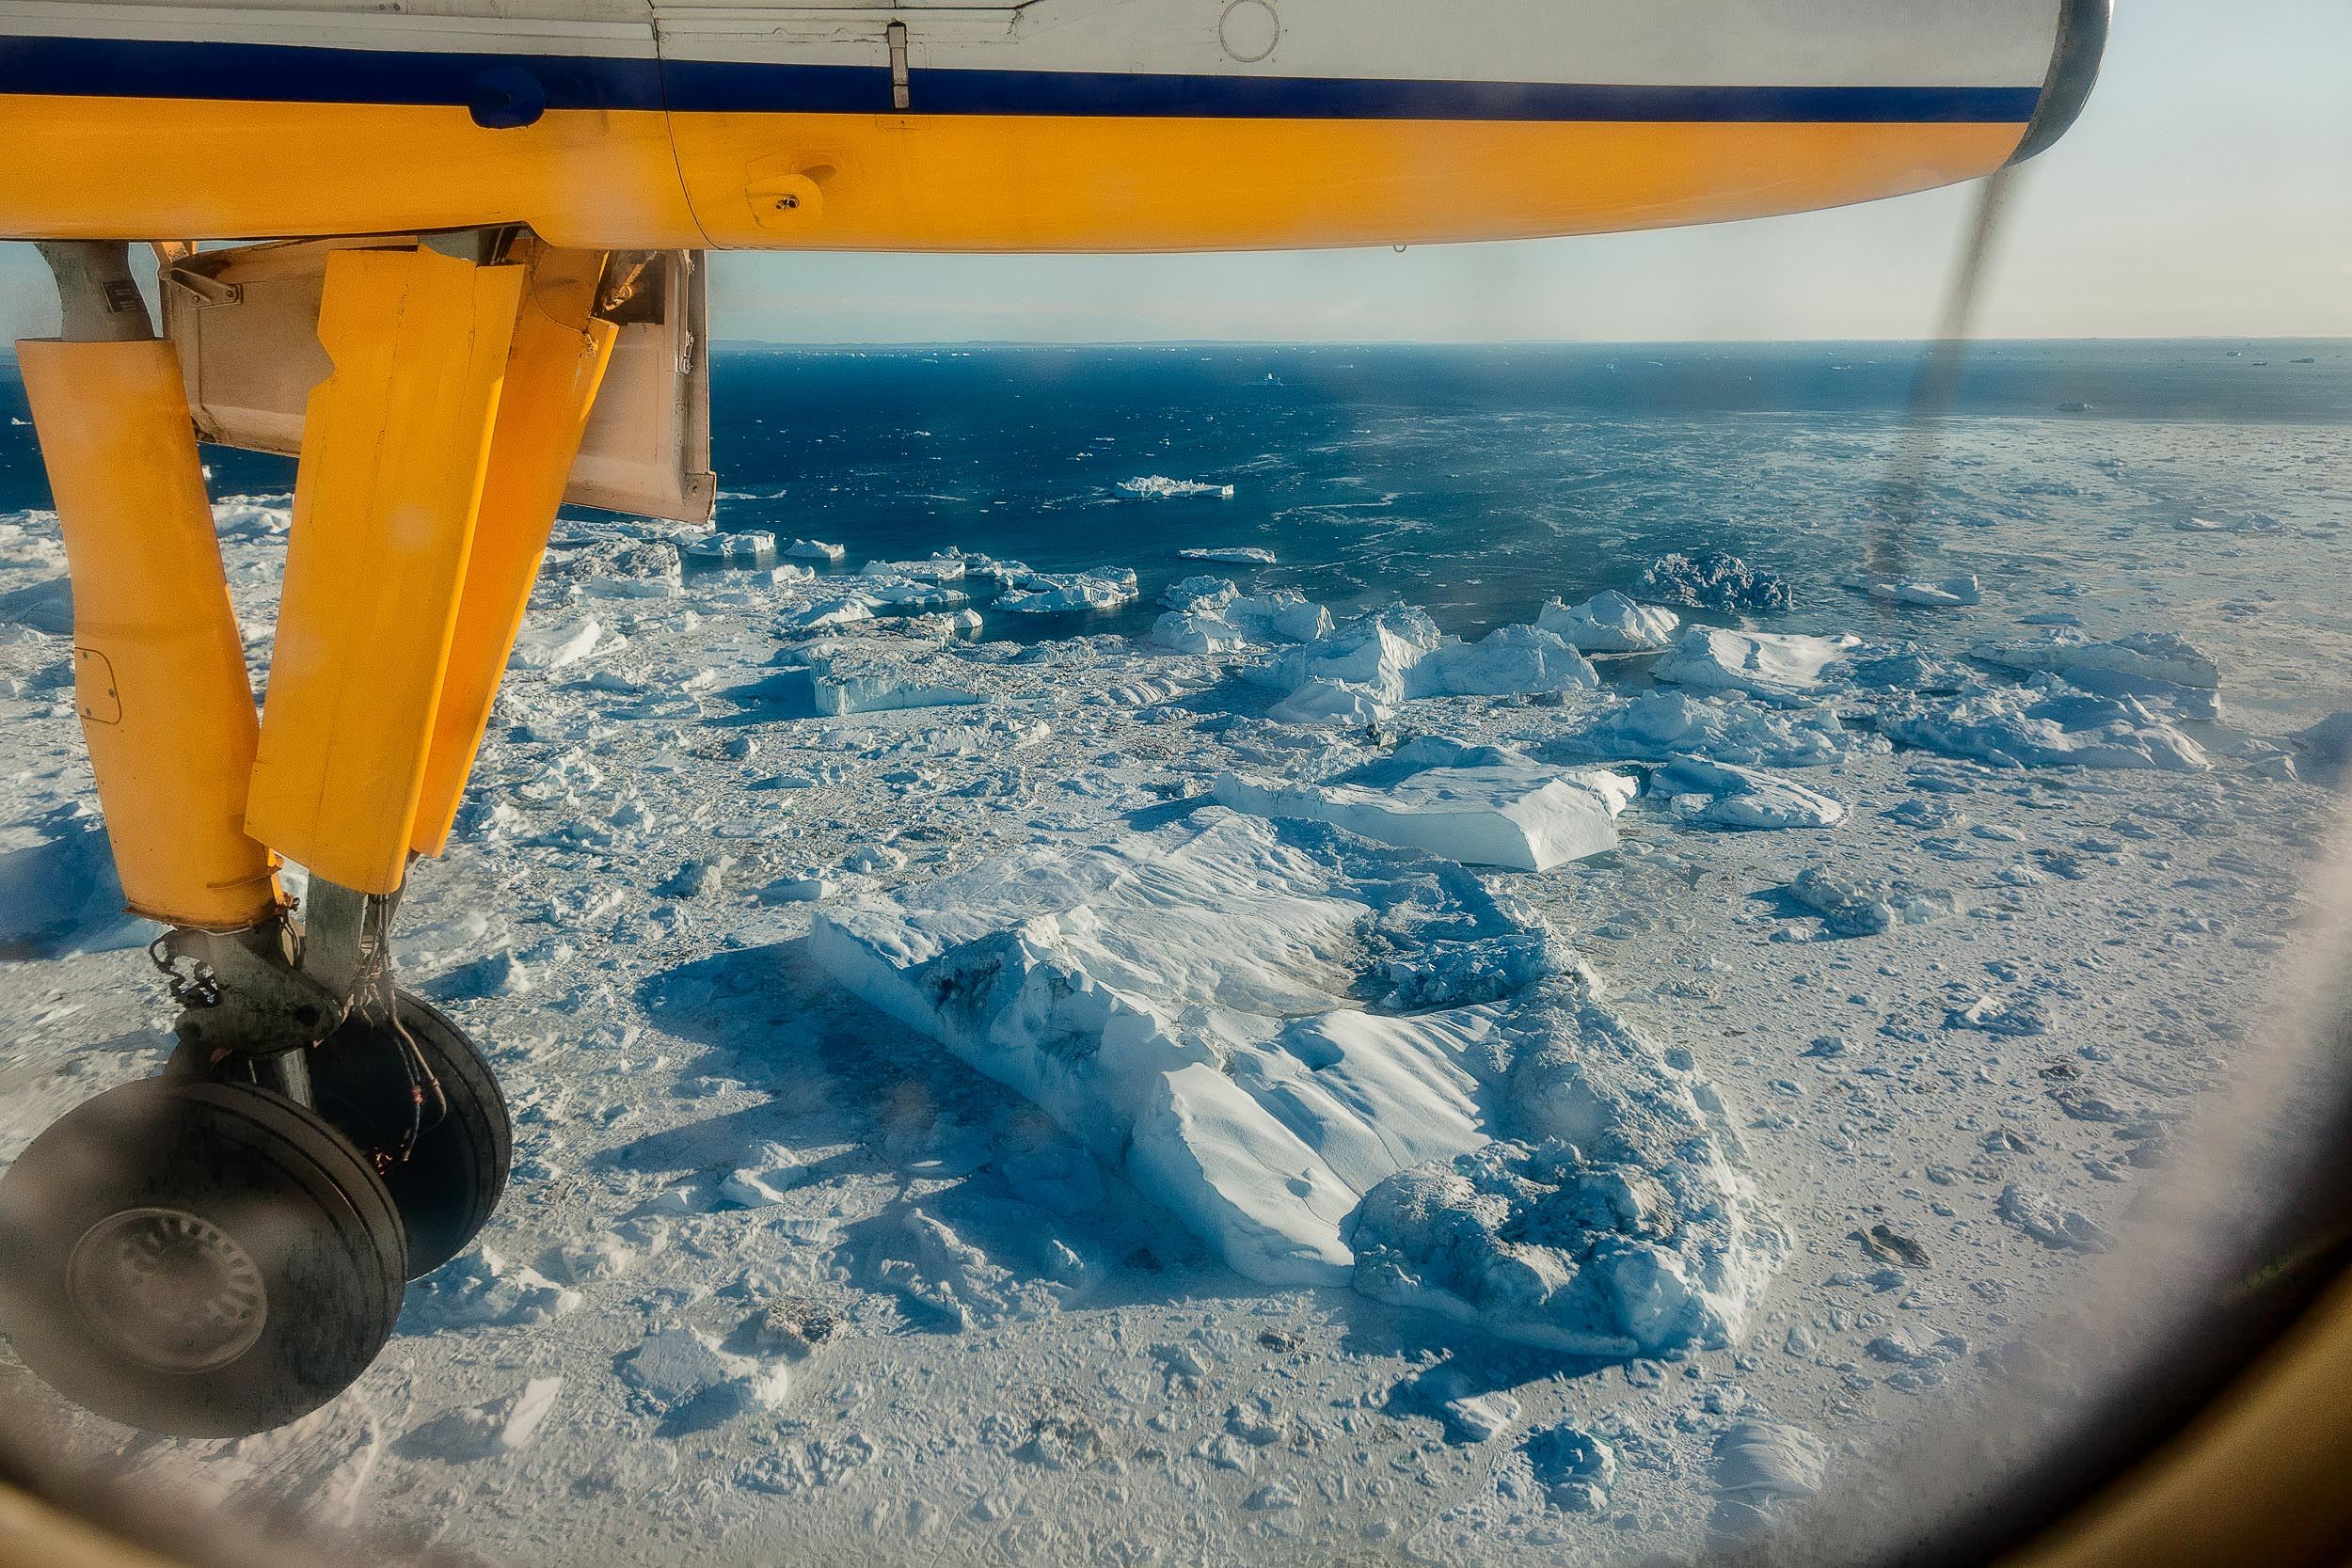 A view over the  Ilulissat Icefjord  from my seat, as the  aeroplane's landing gear comes down , prior to landing near the town of  Ilulissat  on the west coast of  Greenland .